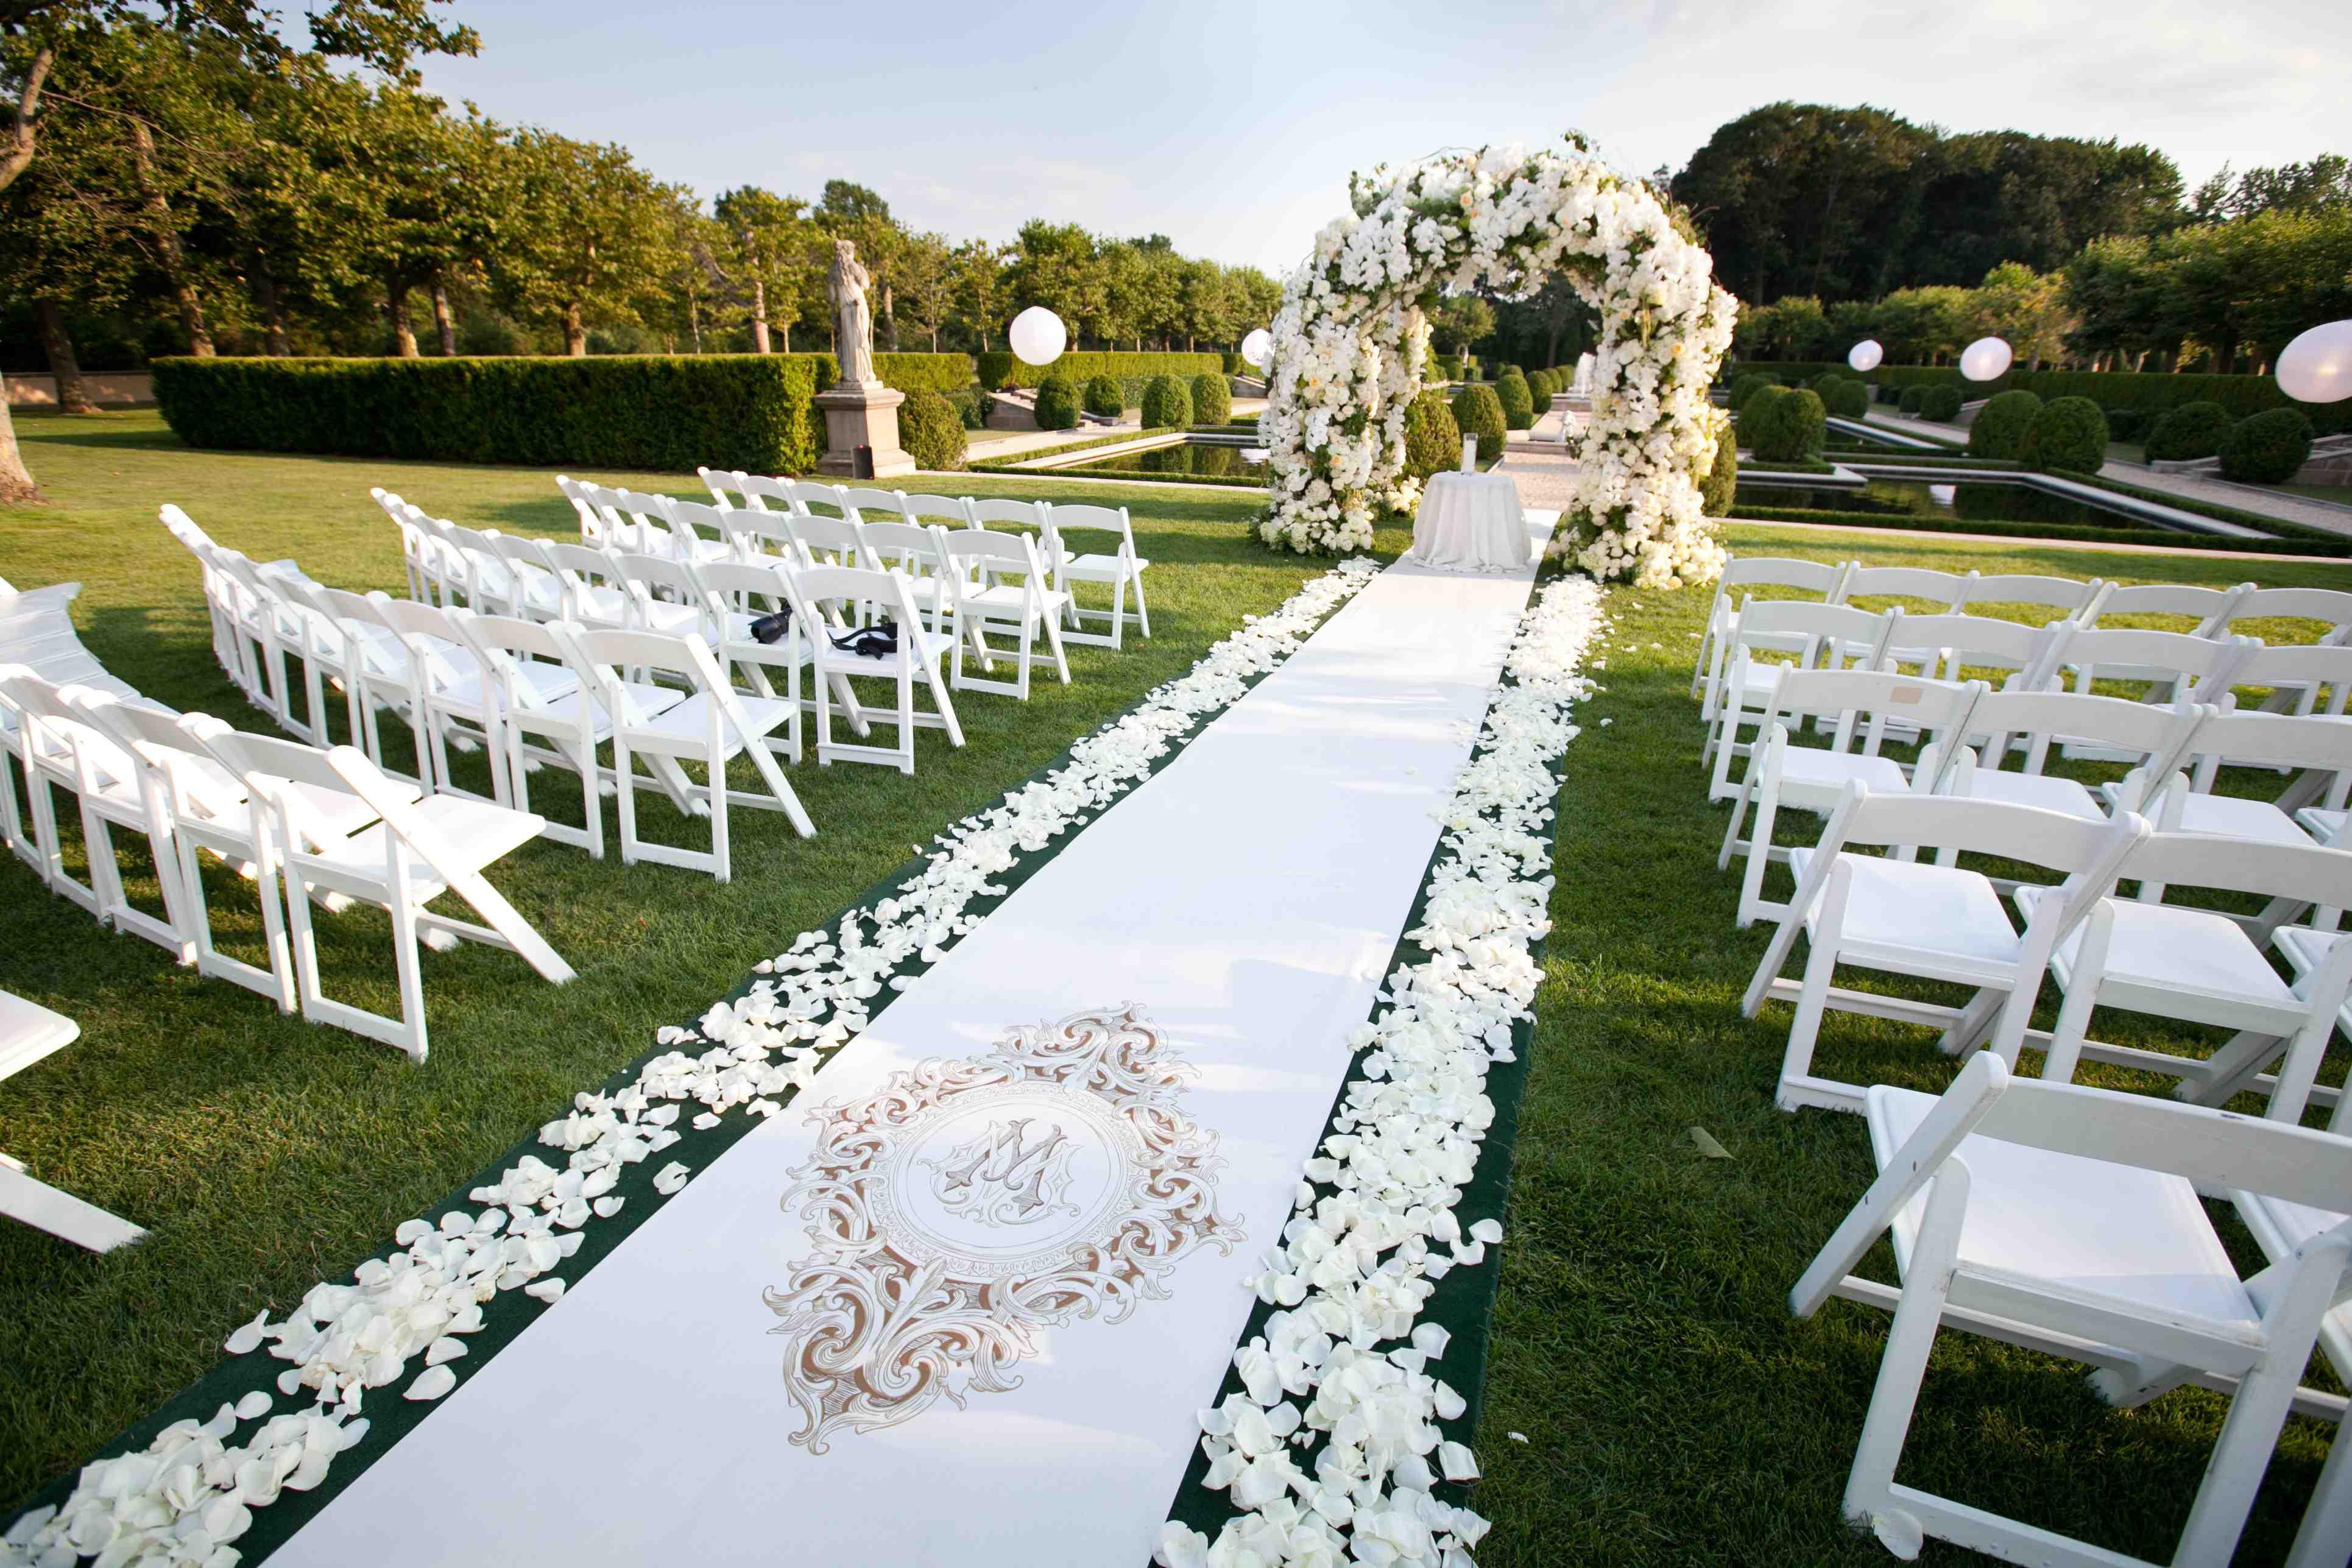 Beautiful Ceremony Structures Enveloped With Flowers